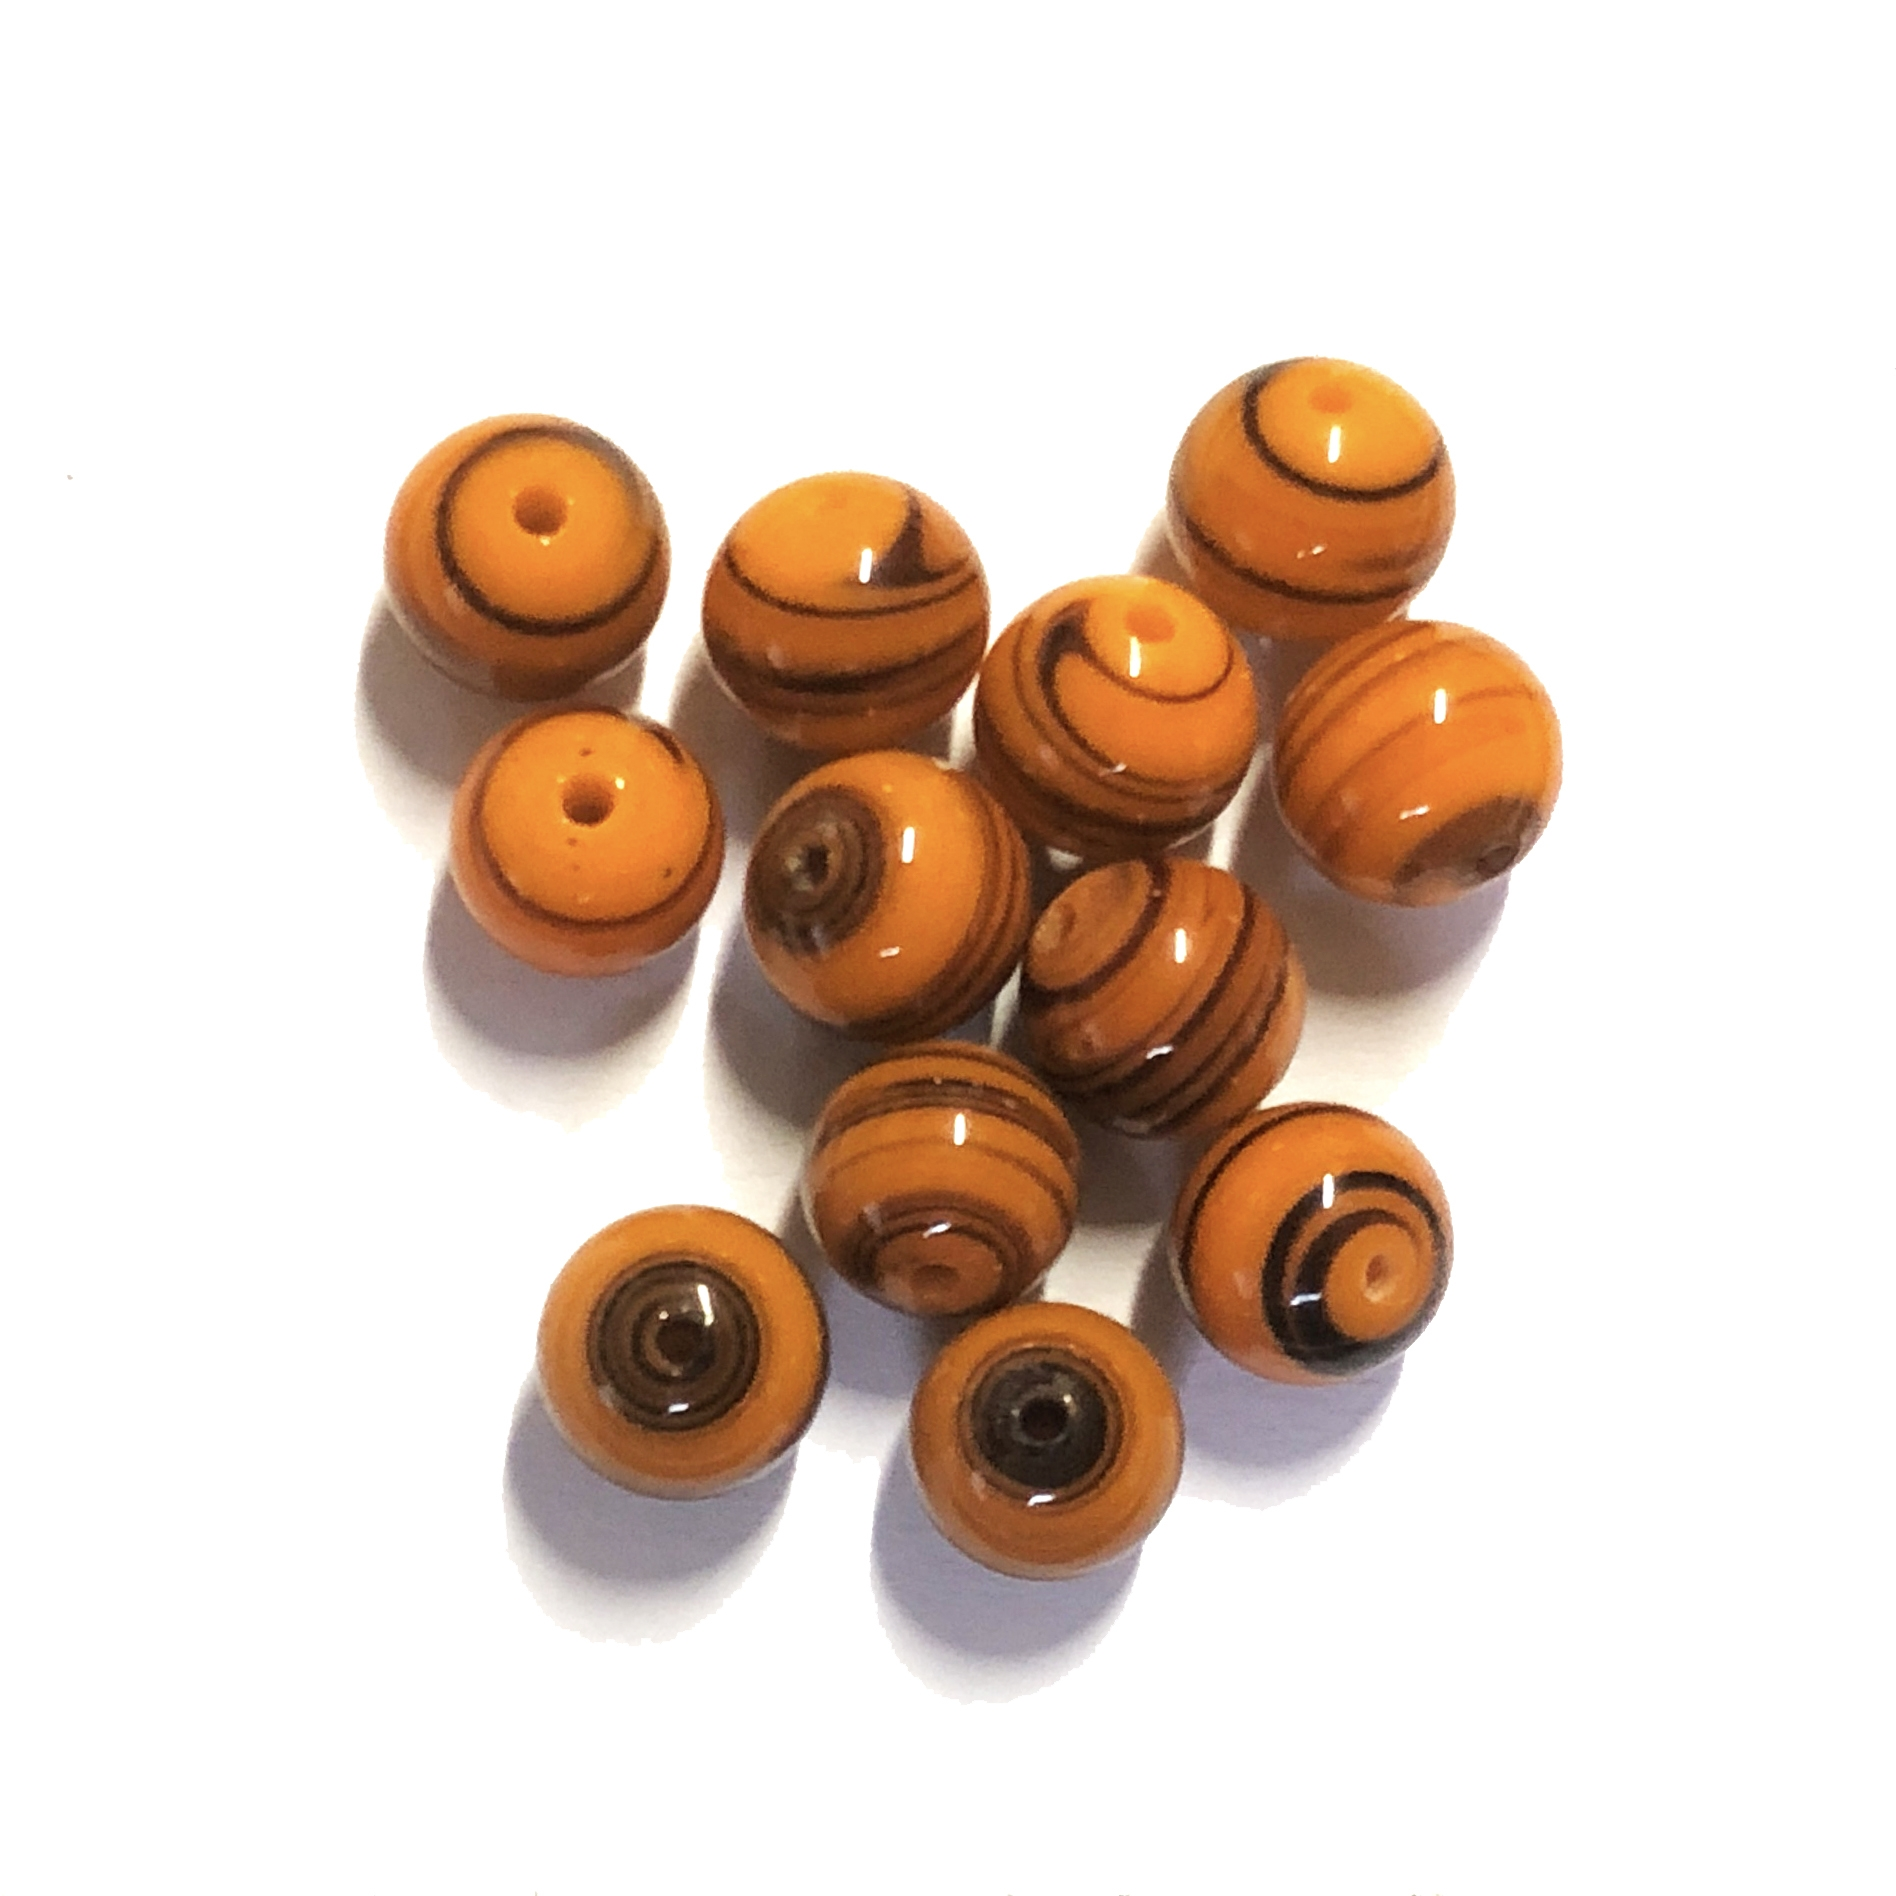 glass swirl beads, Japanese glass, orange, 8mm, 0224, jewelry making supplies, beading supplies, glass beads, bsueboutiques, swirl beads, round beads, sphere beads, opaque orange, orange black swirl beads,